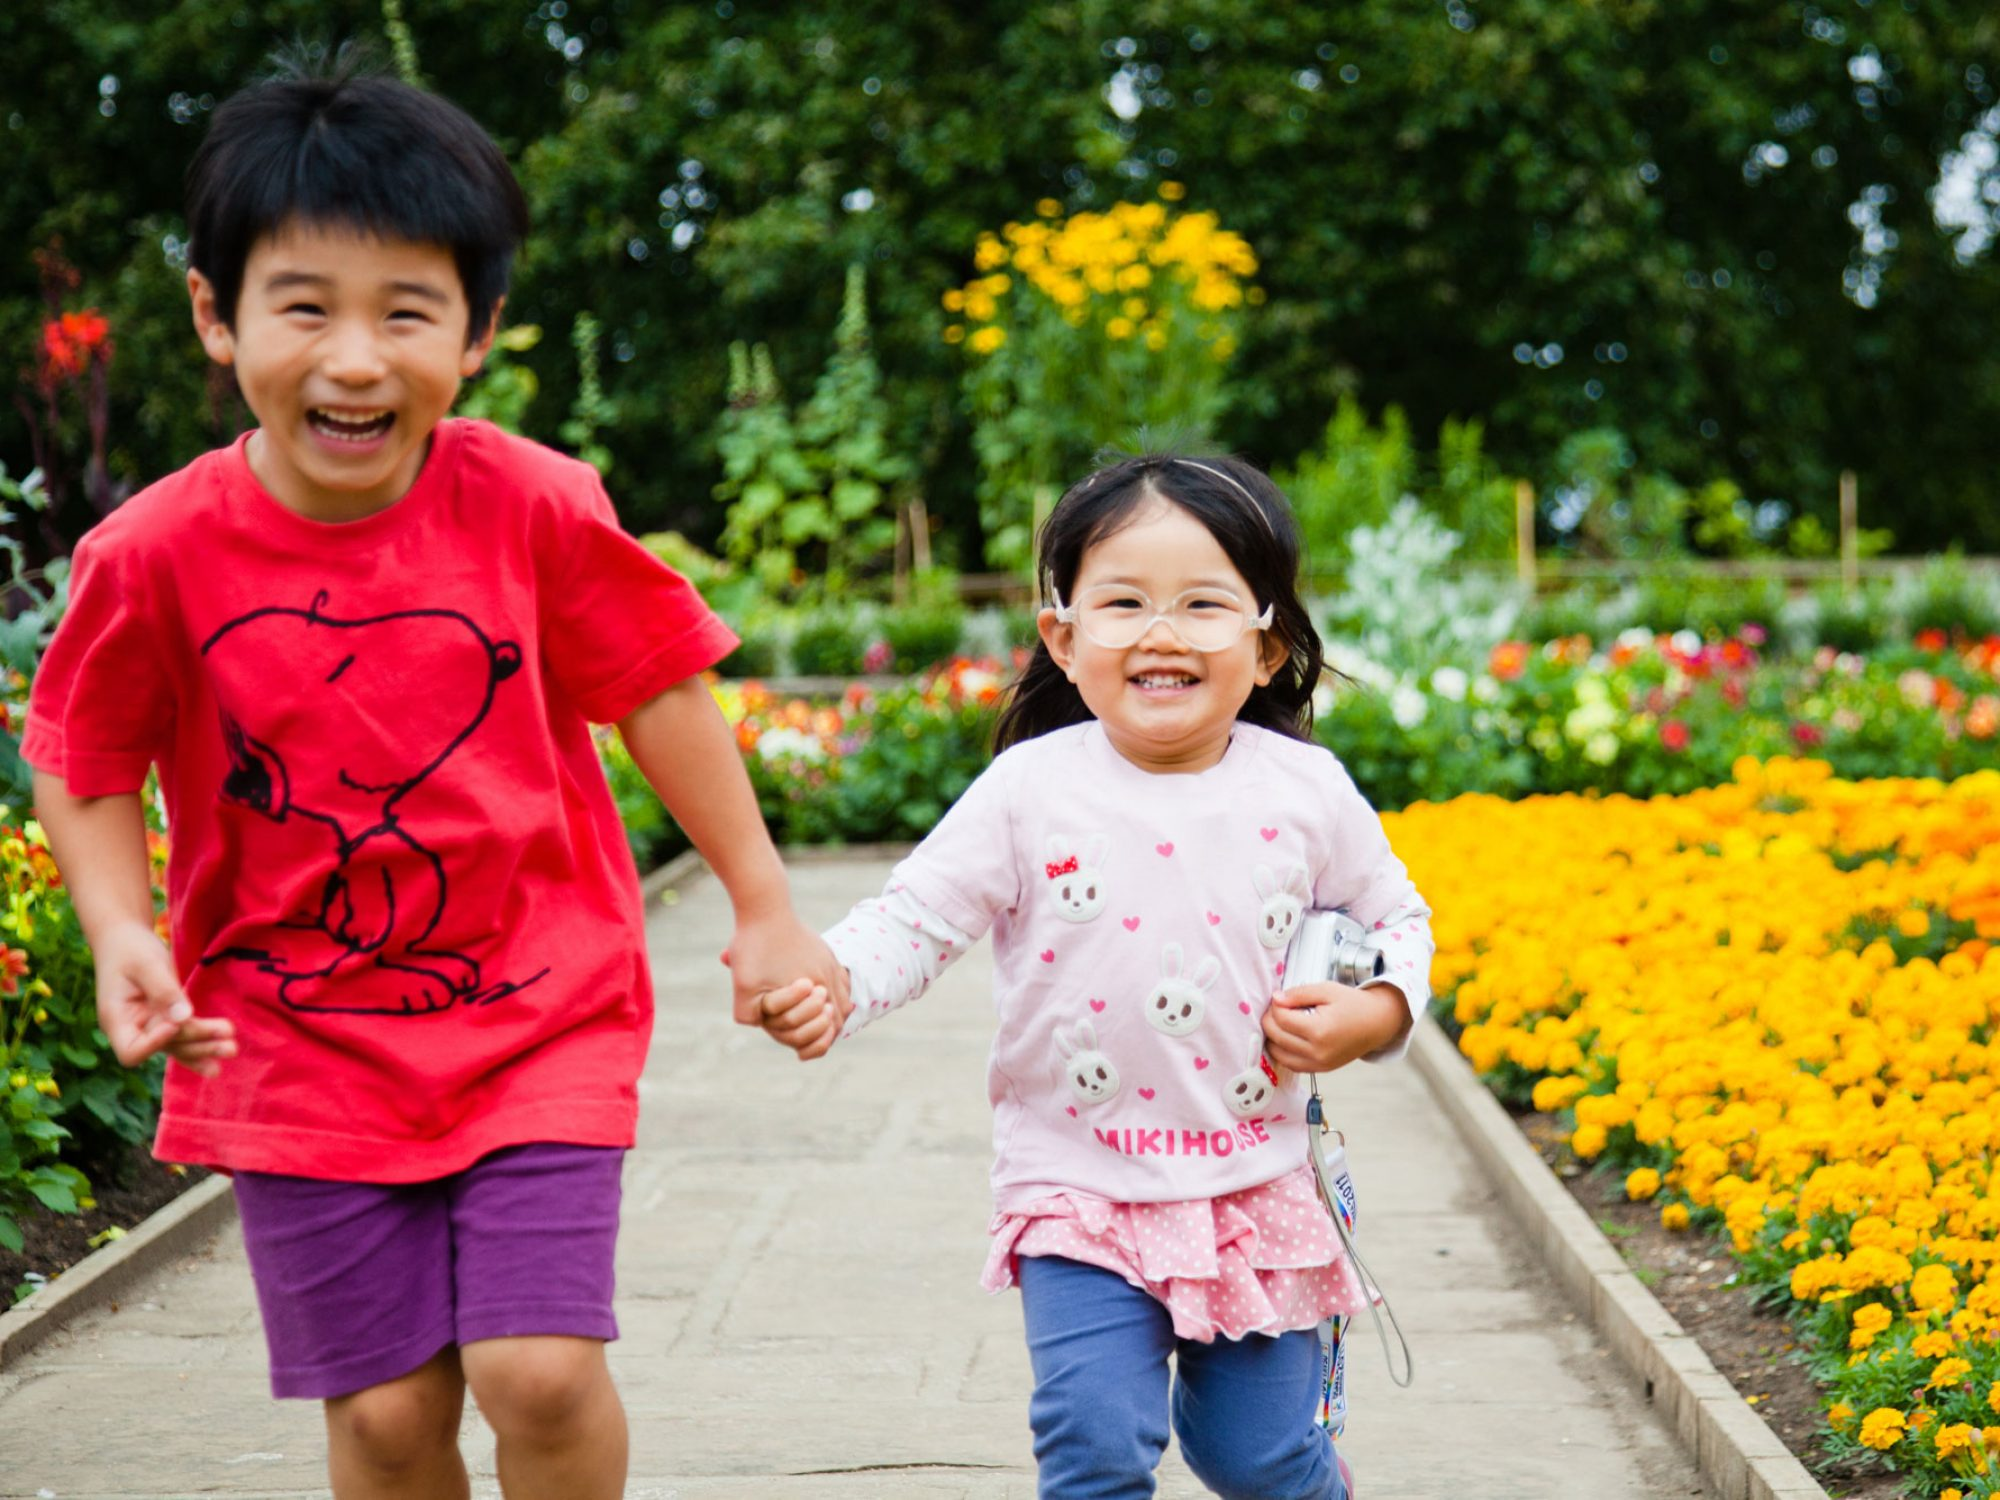 A boy and a girl hold hands laughing as they run towards the camera. They are in a Garden, running along a paved path. To their right and behind them are colourful flowerbeds with yellow and red flowers